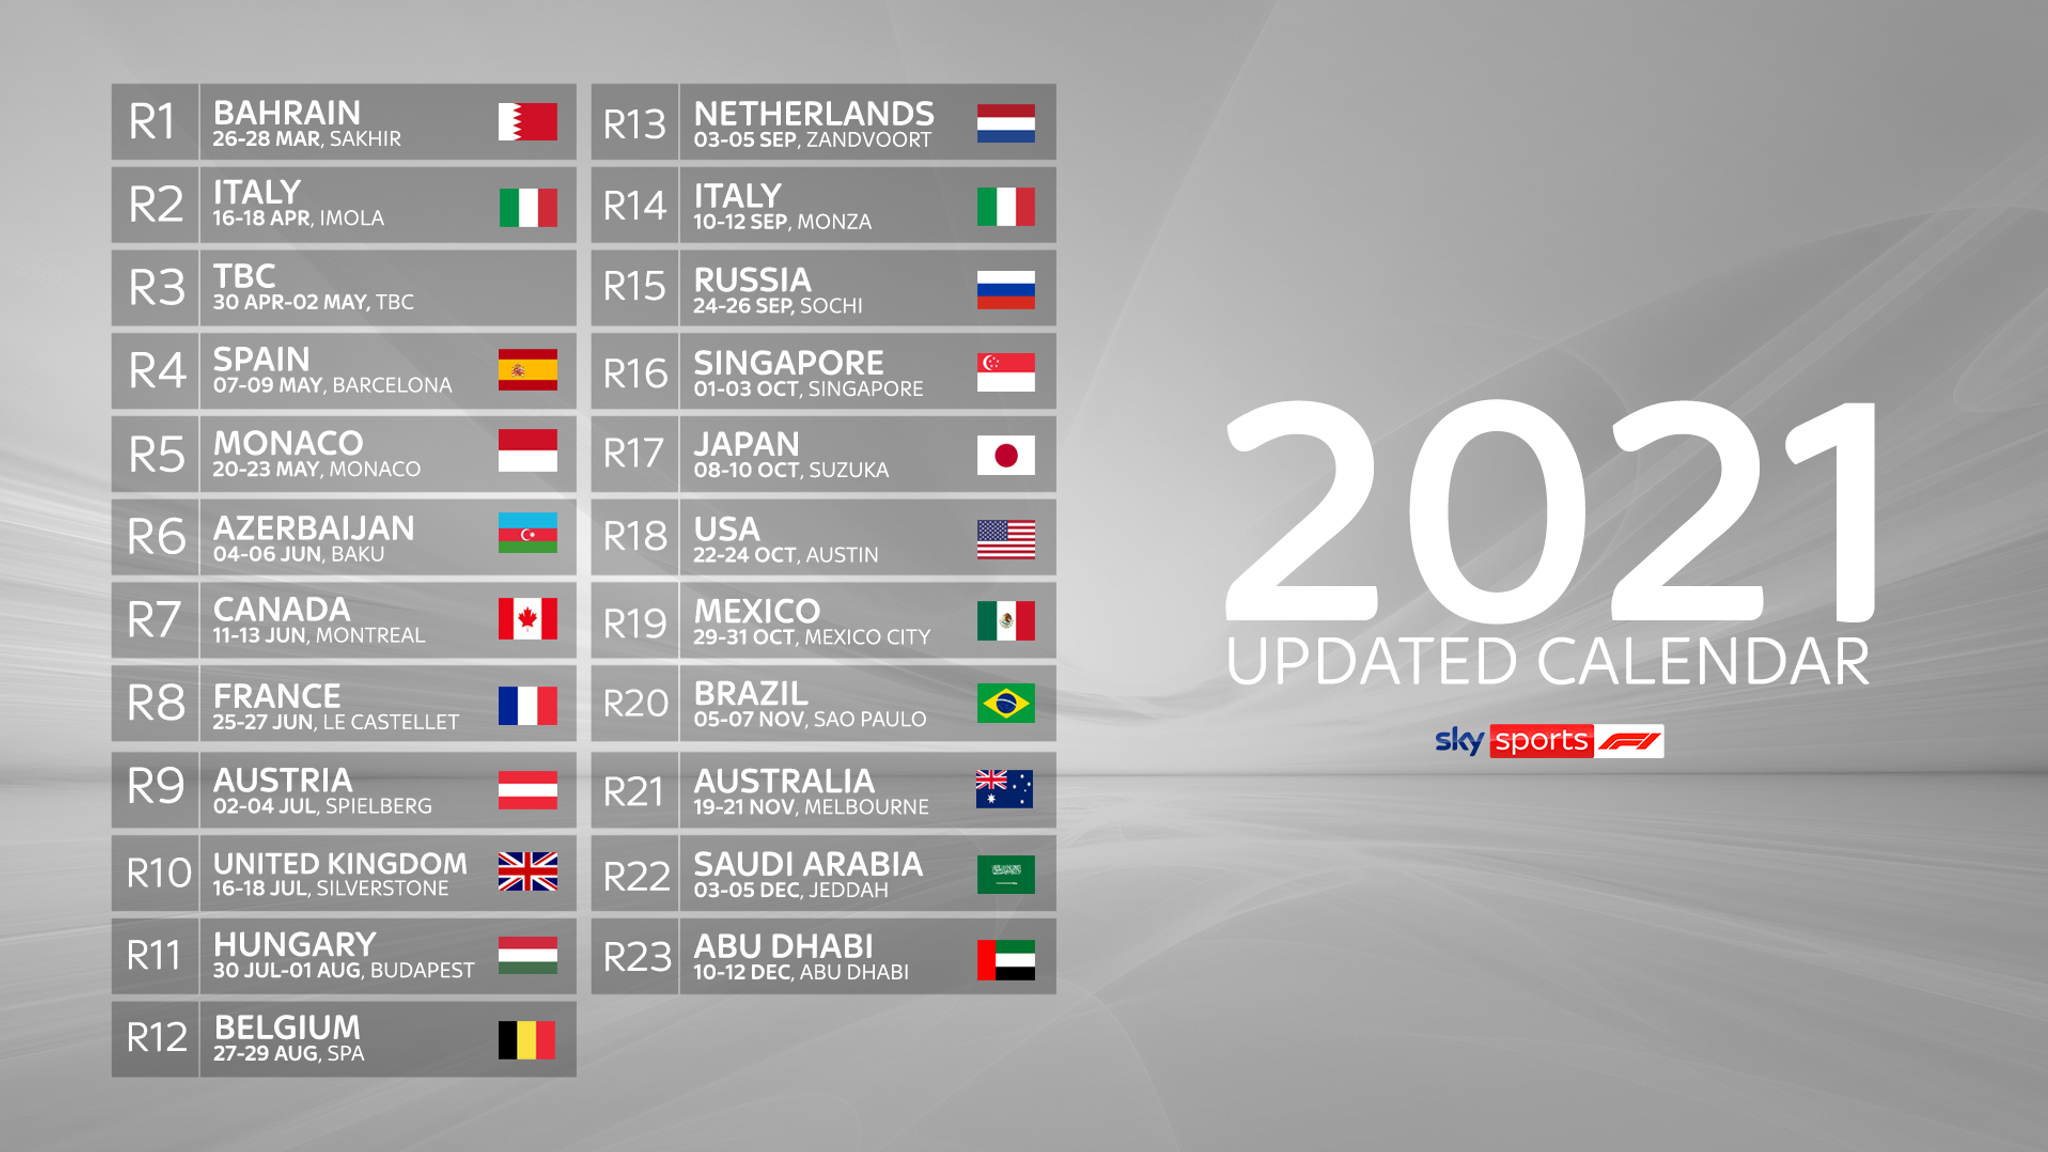 F1 2022 Calendar Download.F1 2021 Calendar Testing And Launches Everything You Need To Know About The New Formula 1 Year F1 News